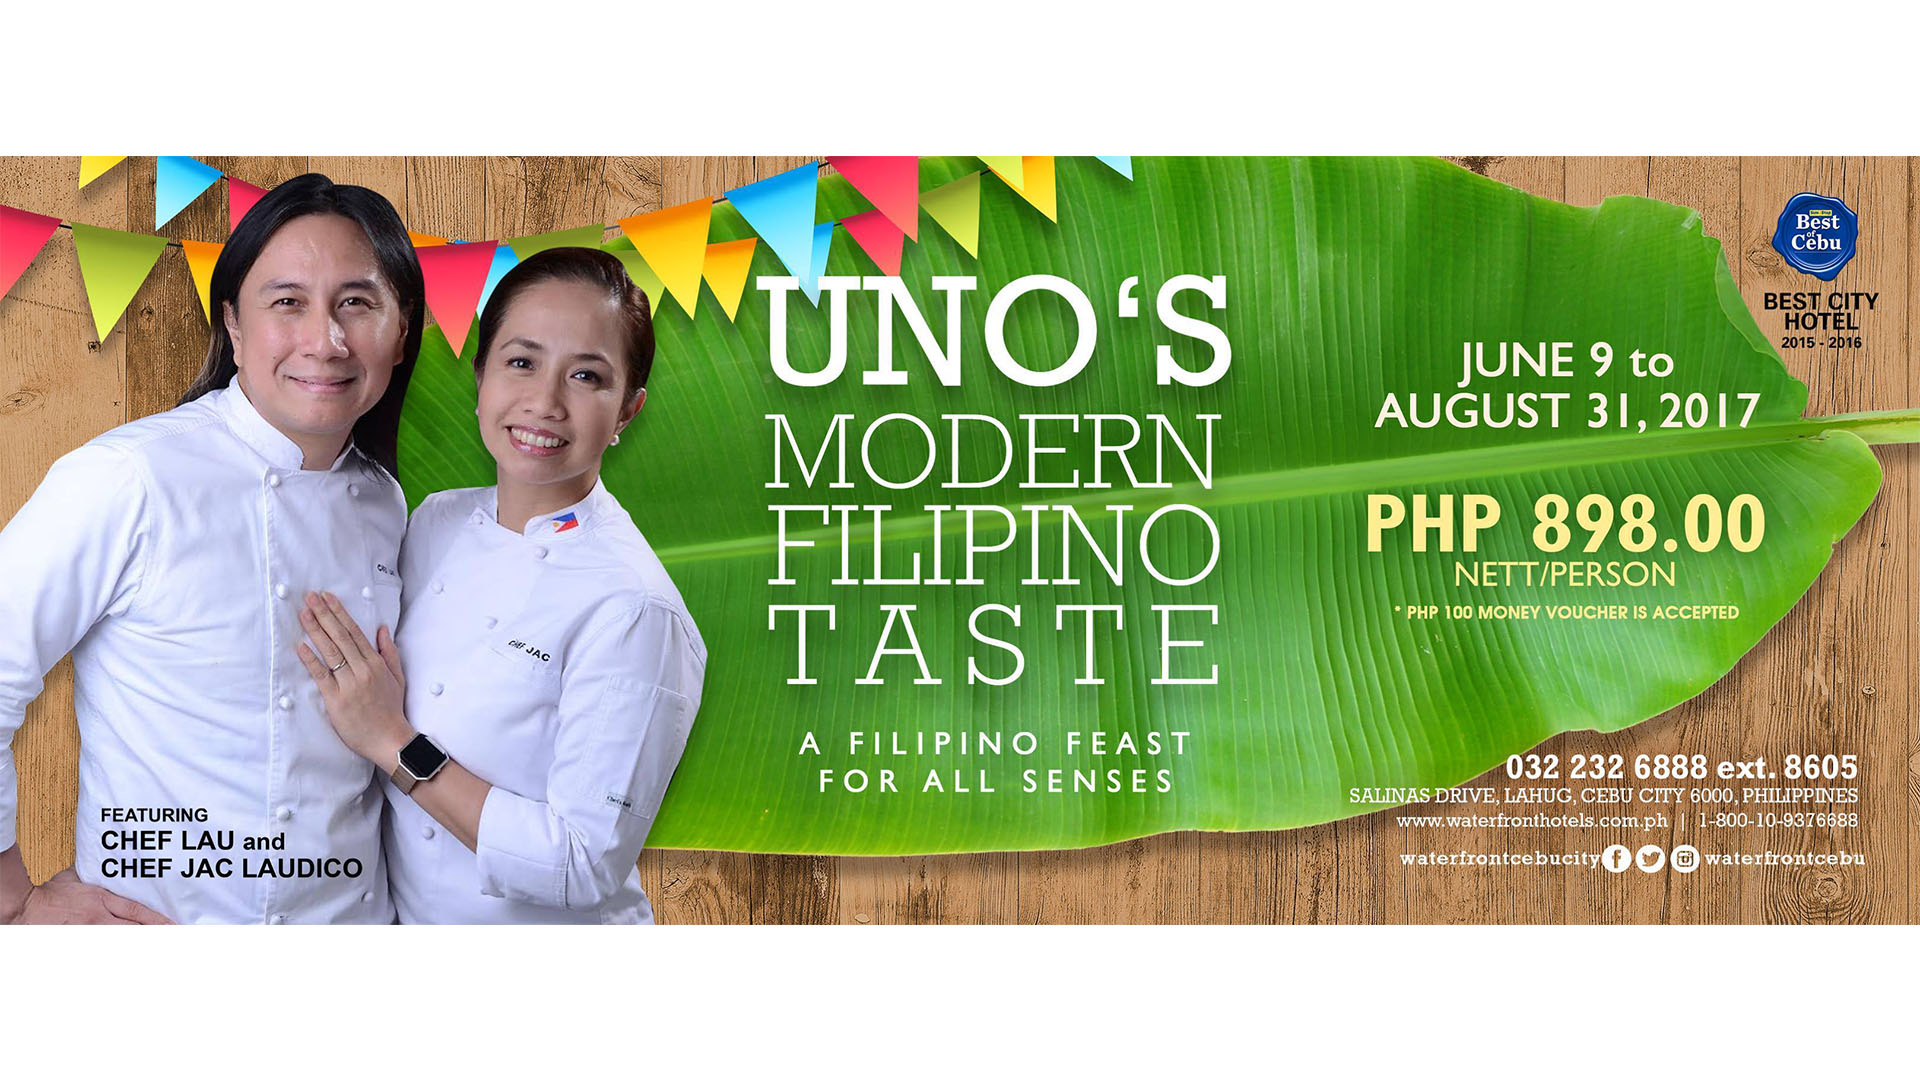 Waterfront Cebu City Hotel & Casino Celebrates Buwan Ng Wika w/ Celebrity Chef Couple + August Promotions